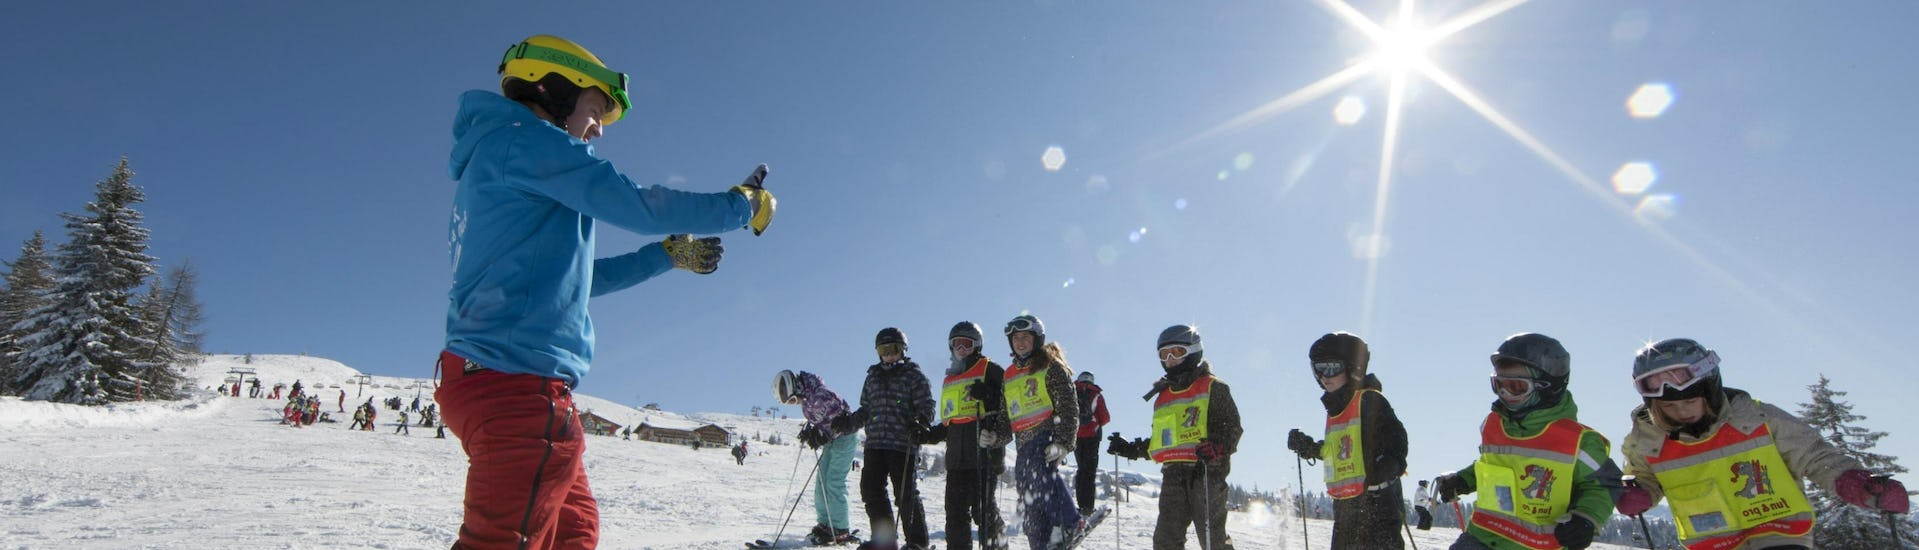 A ski instructor is holding one of the many group ski lessons in the ski resort of La Plagne.